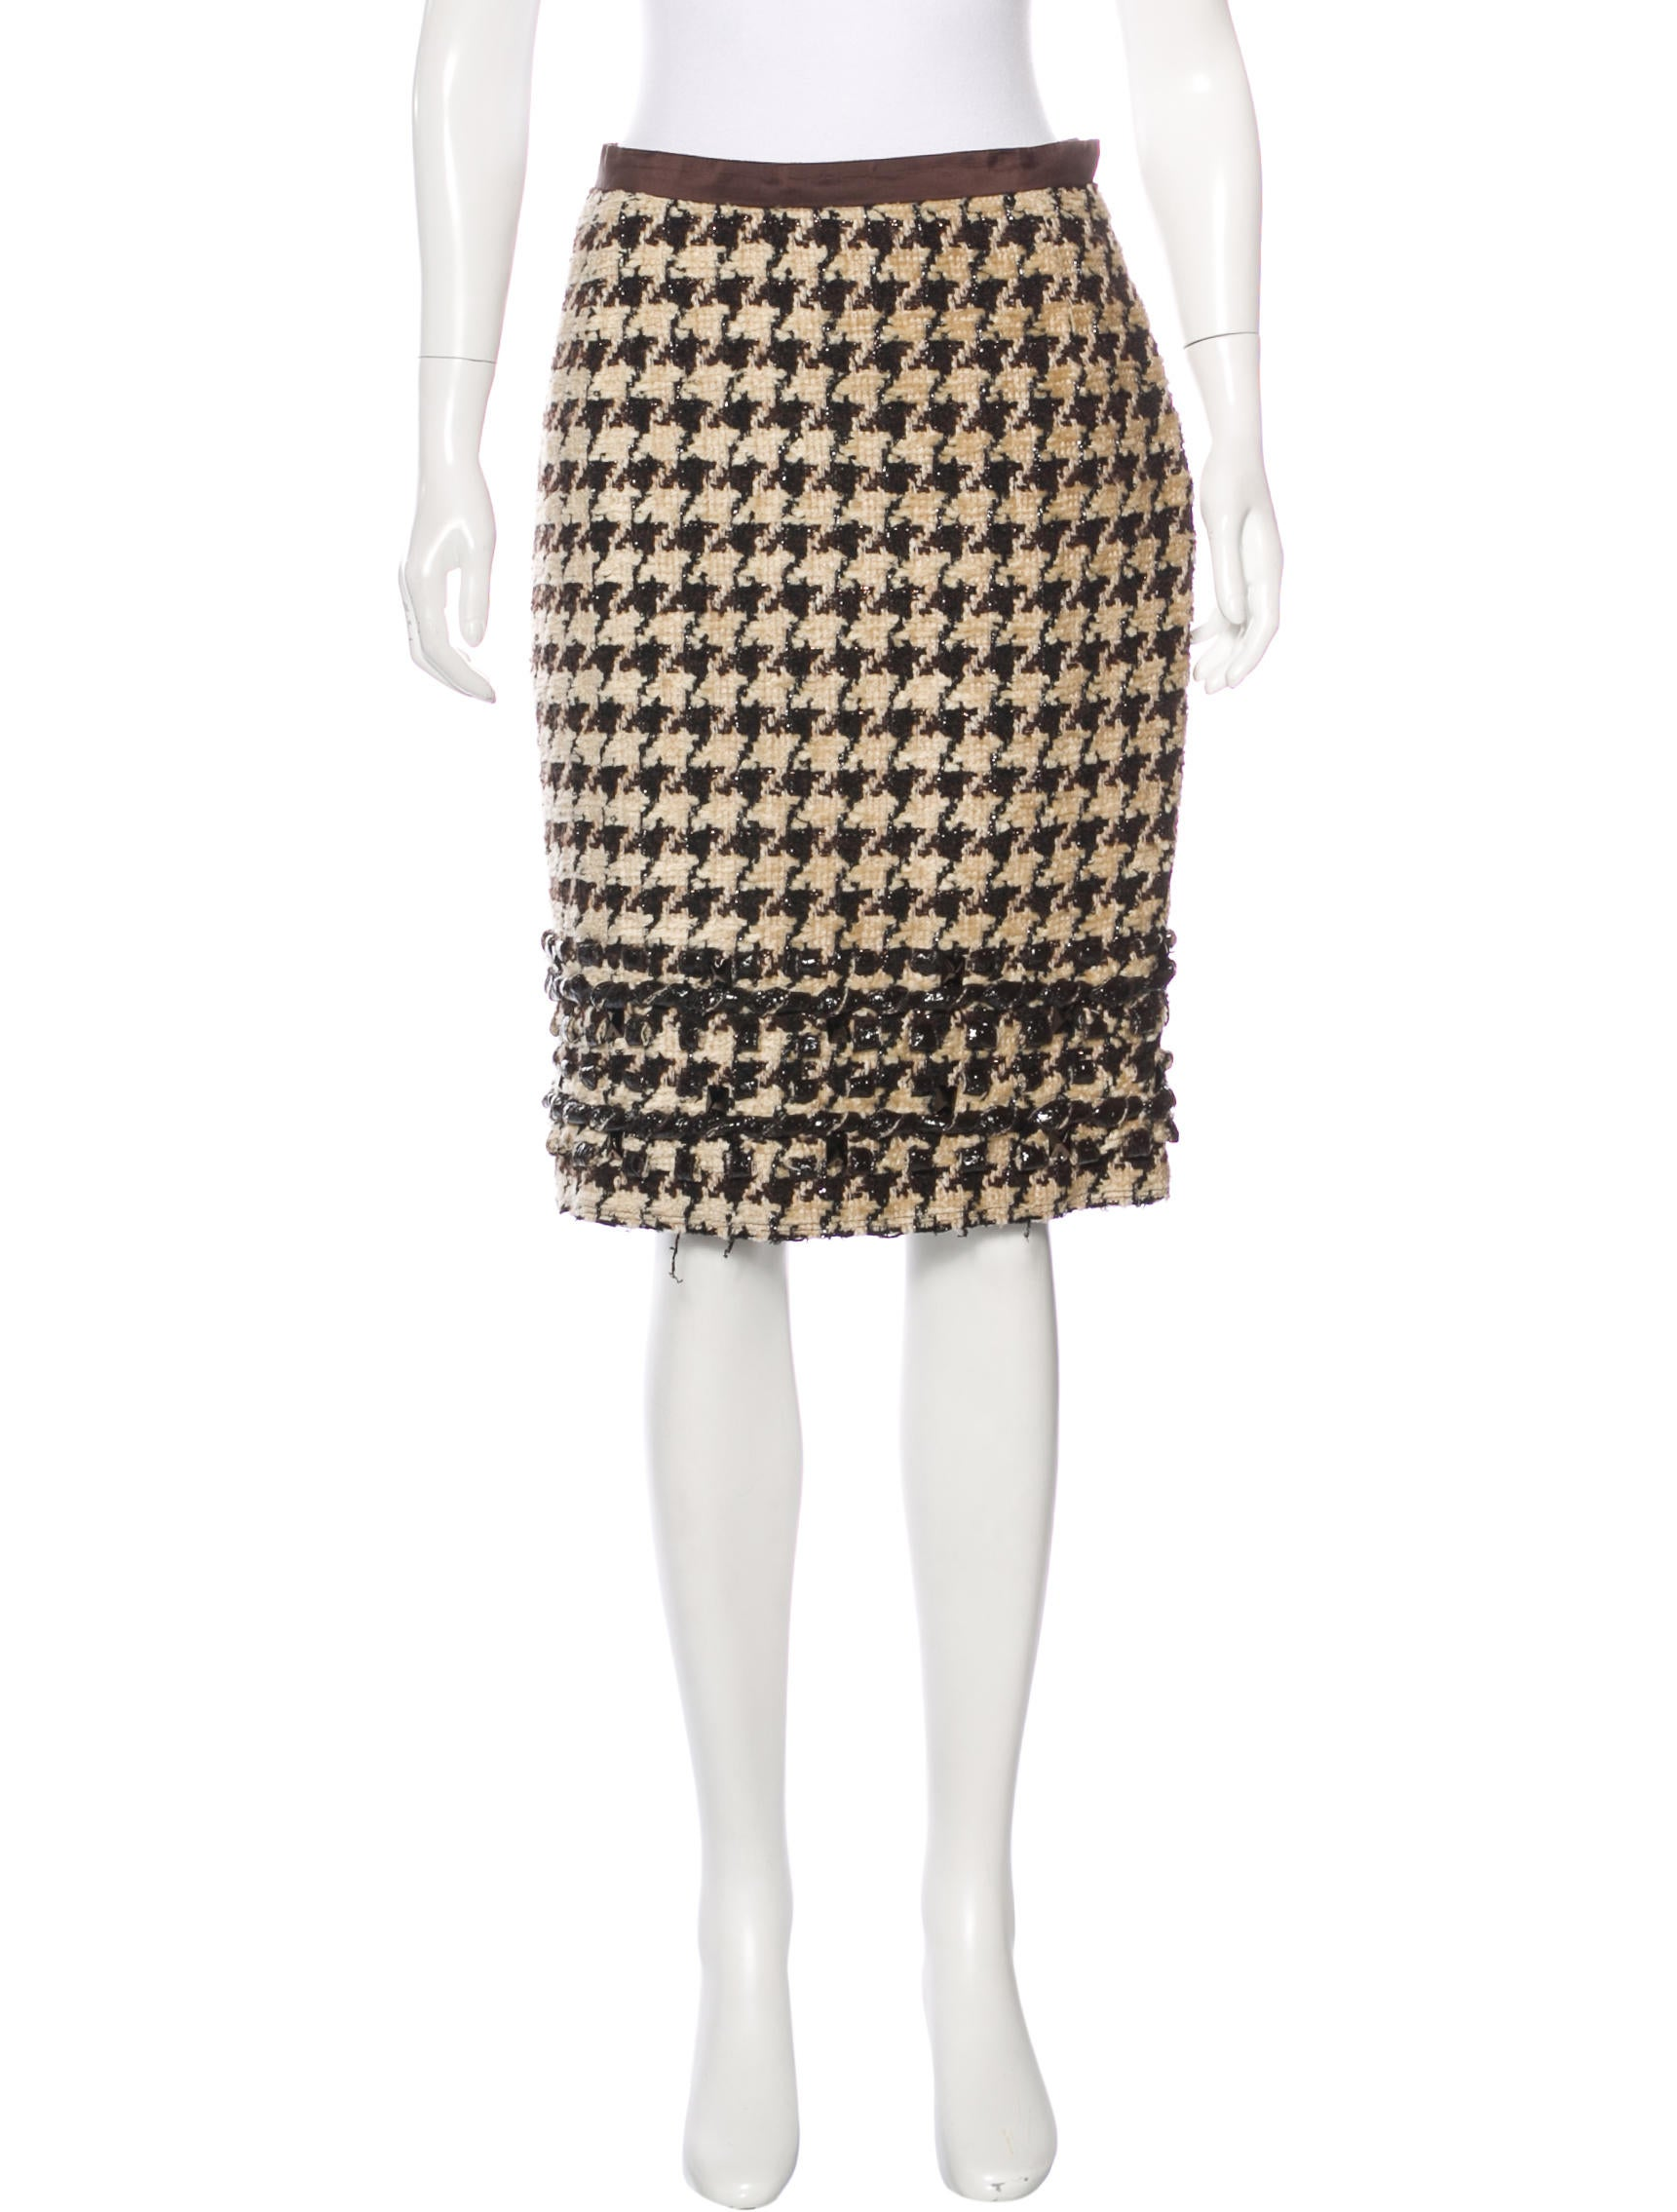 The skirt is a size 10 and the fabric is a beautiful thick tweed houndstooth that is a very dark navy blue and white/cream with specks of various colors Casual Corner & Co Wool Blend Houndstooth Pencil Skirt Lined Brown Size 6.